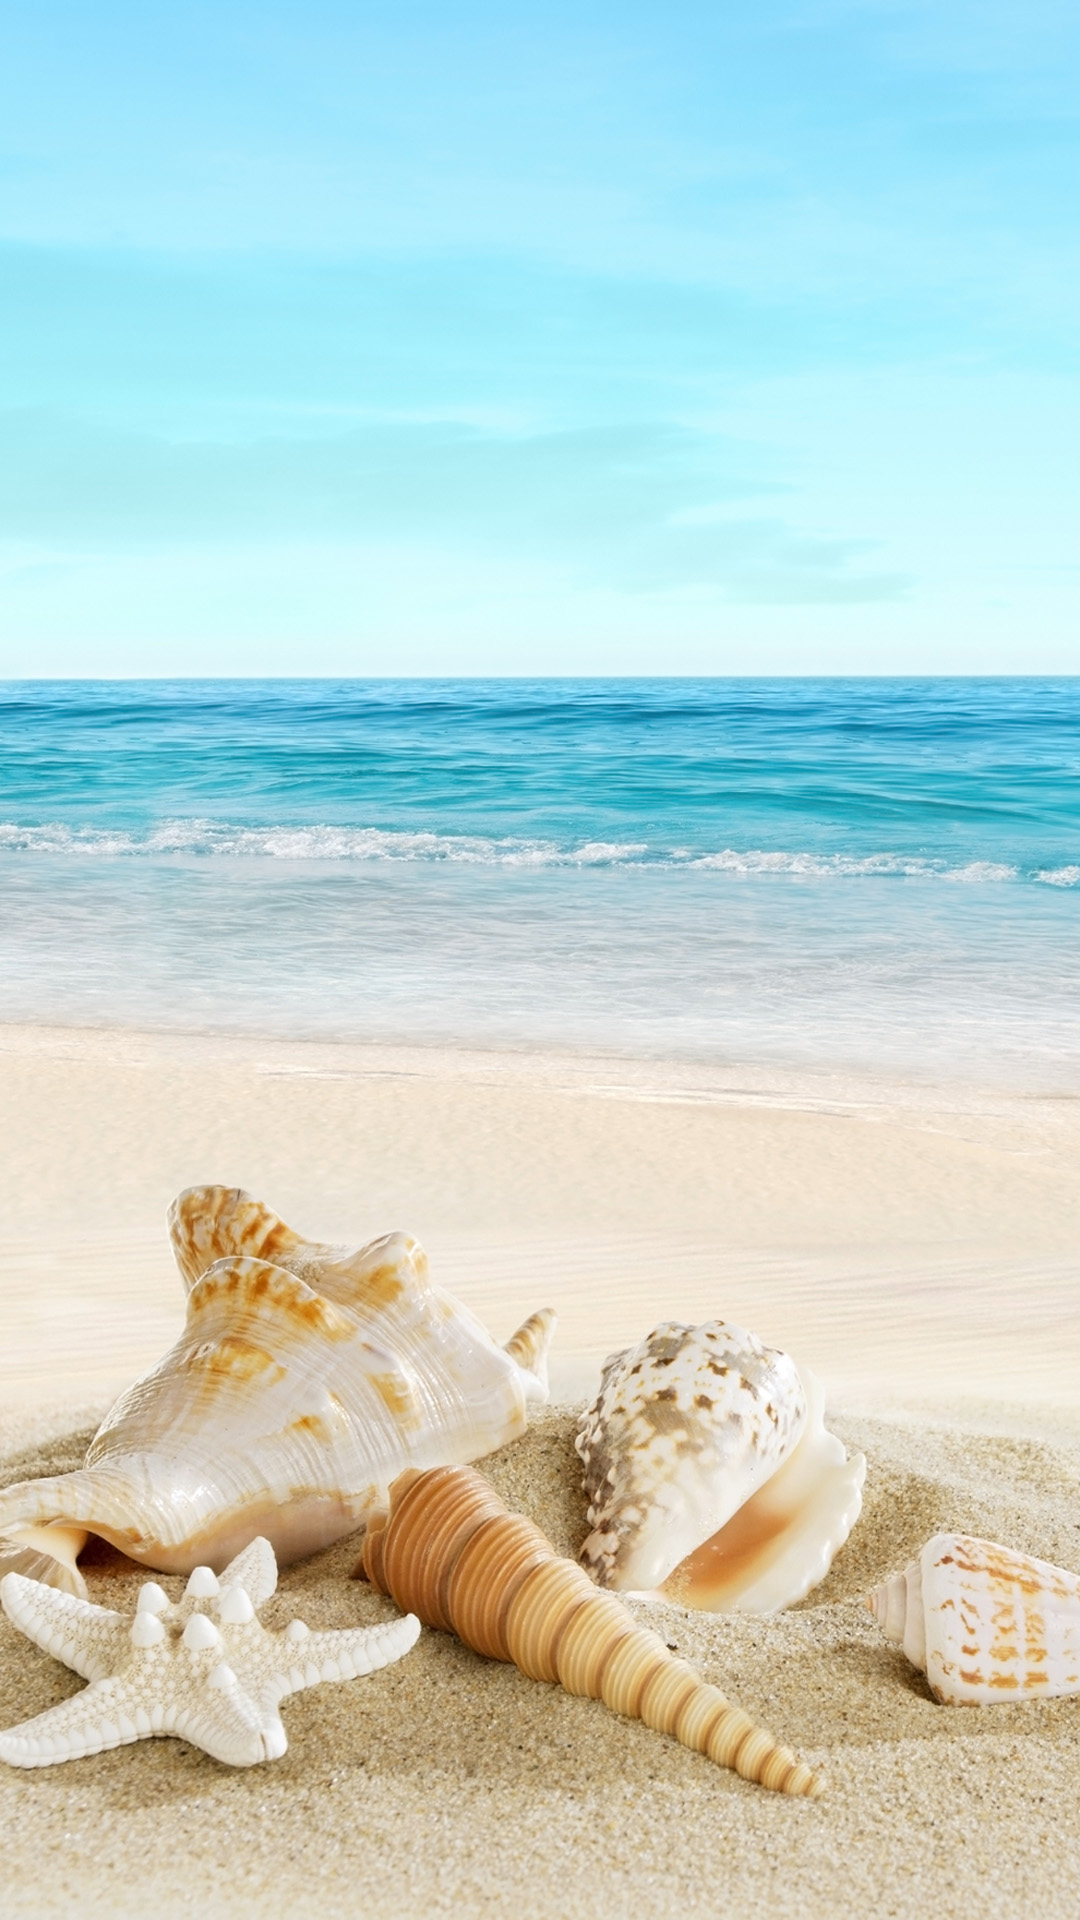 Landscape with shells on tropical beach